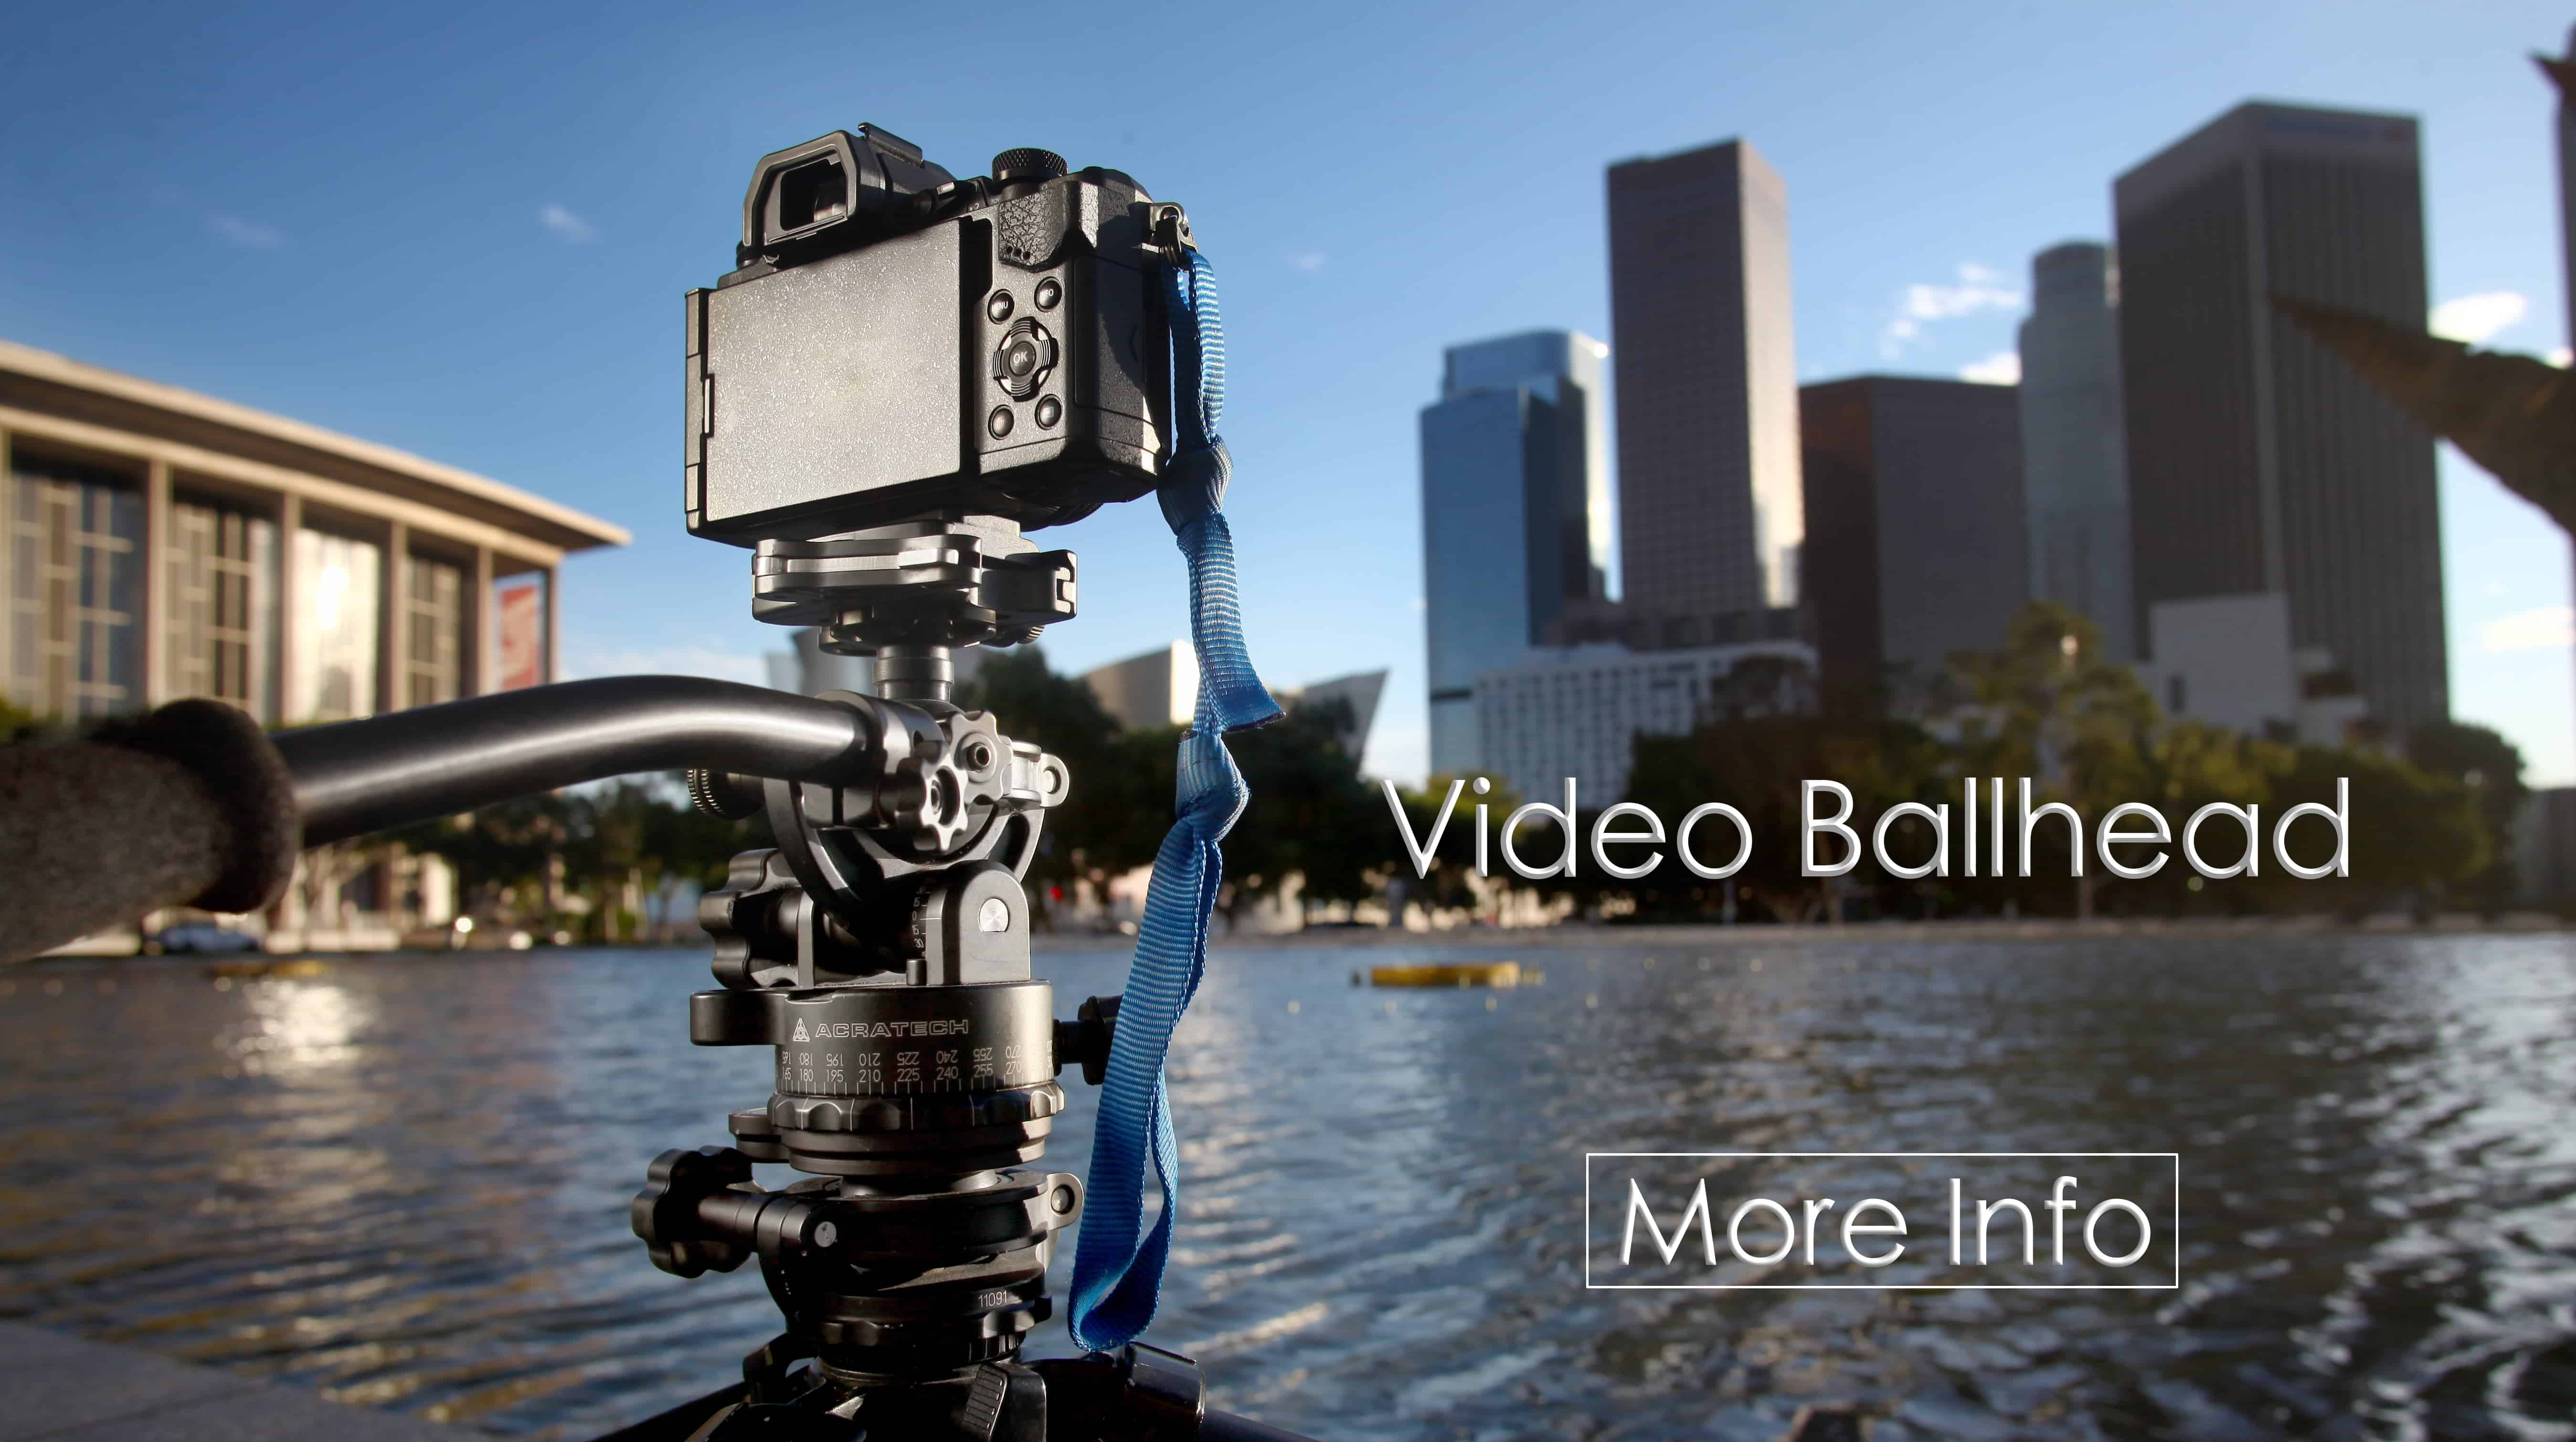 Tripod Ball Heads, Lightweight Travel Photography Gear - Acratech